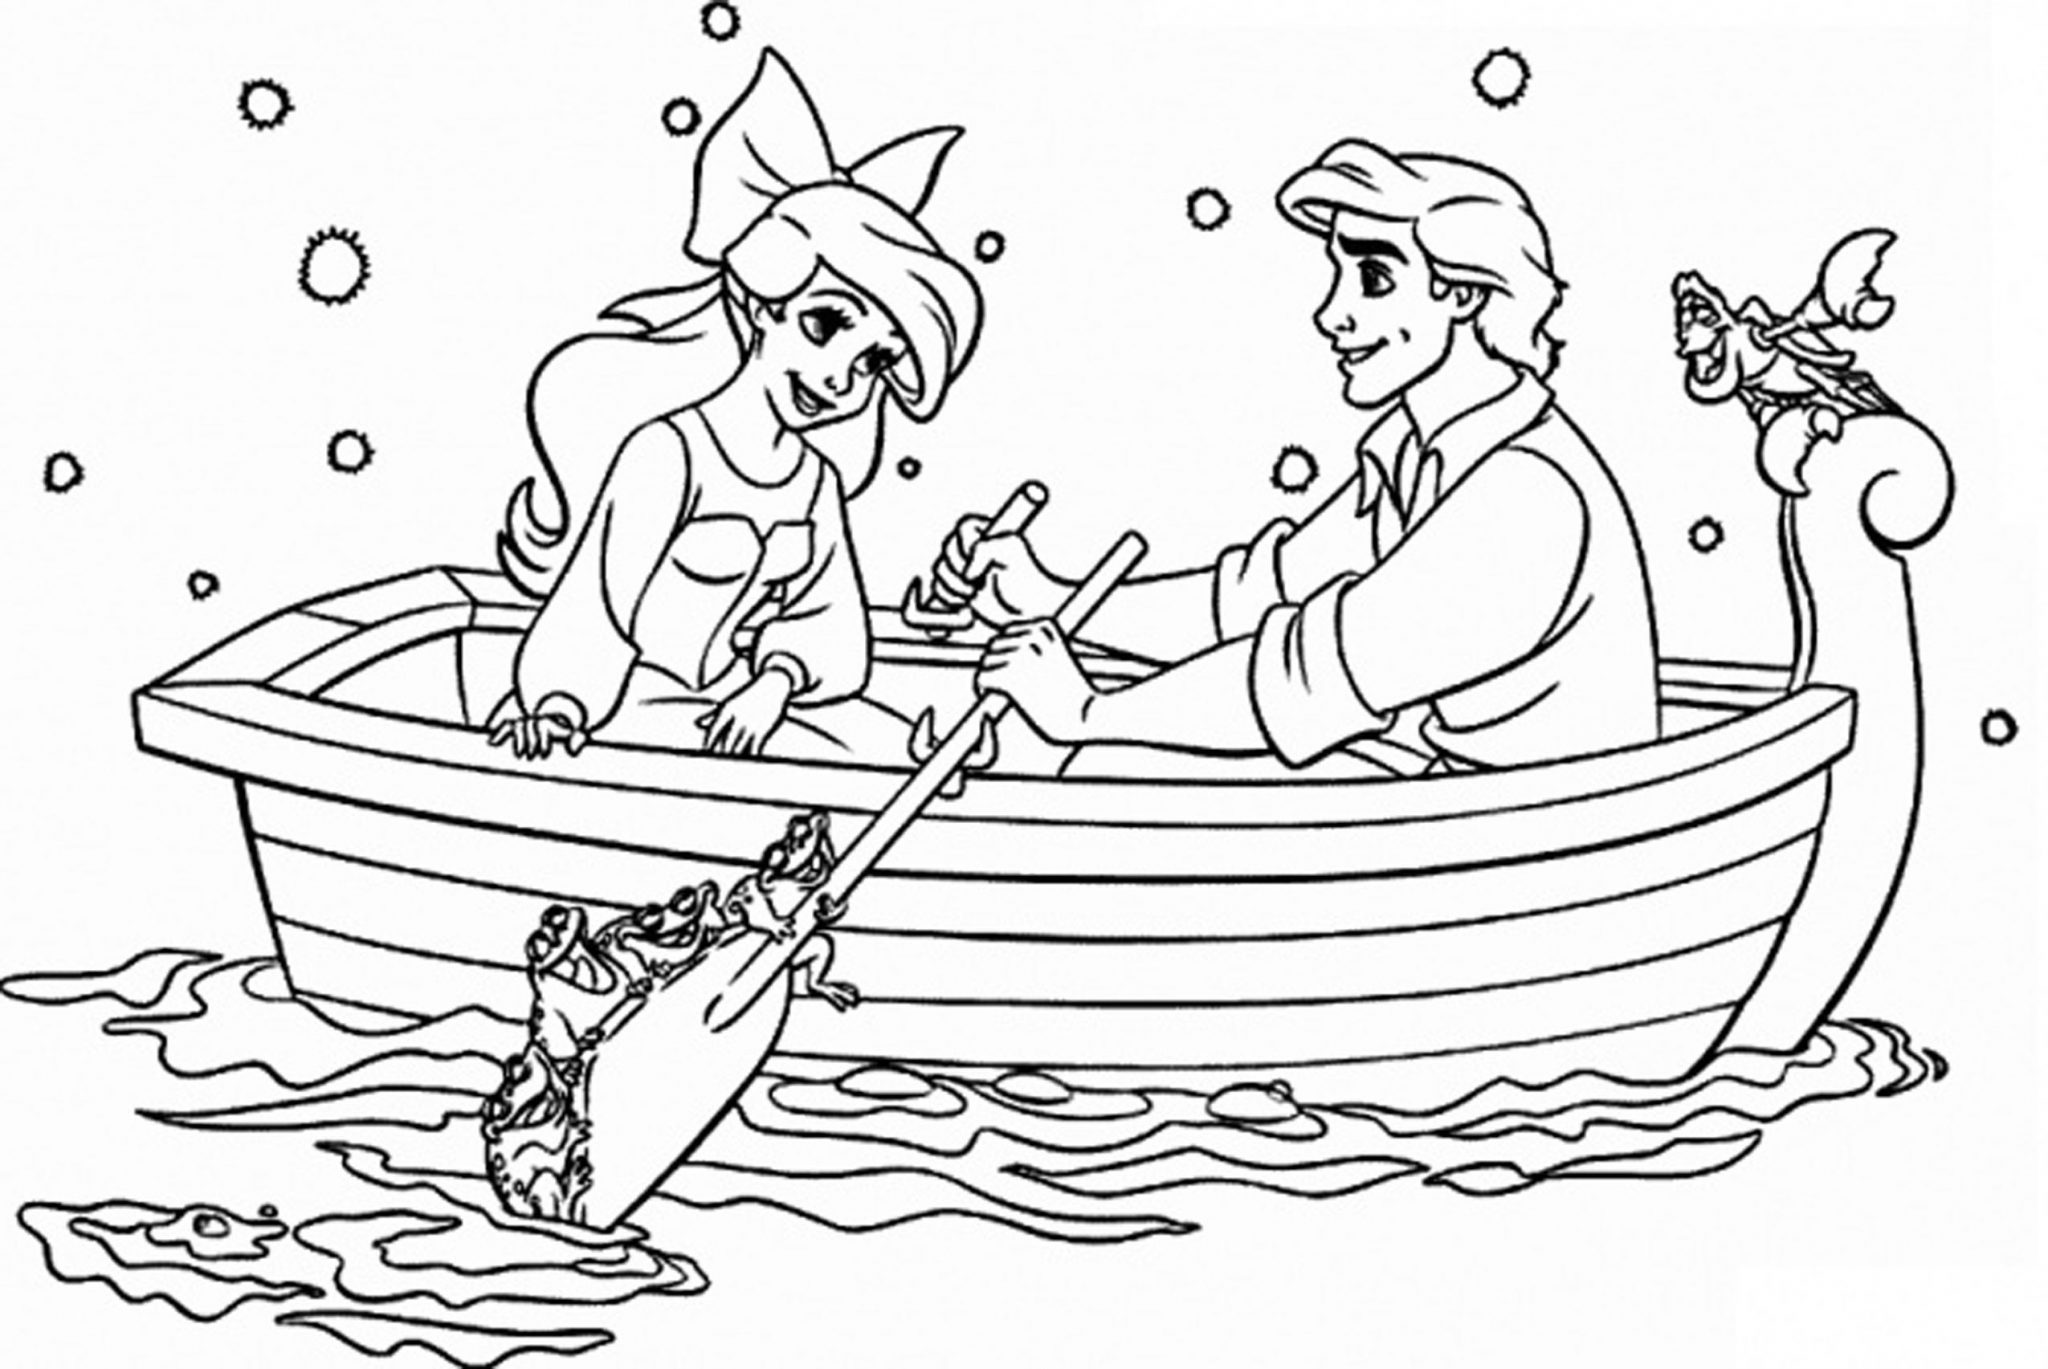 Printable disney coloring books - Check